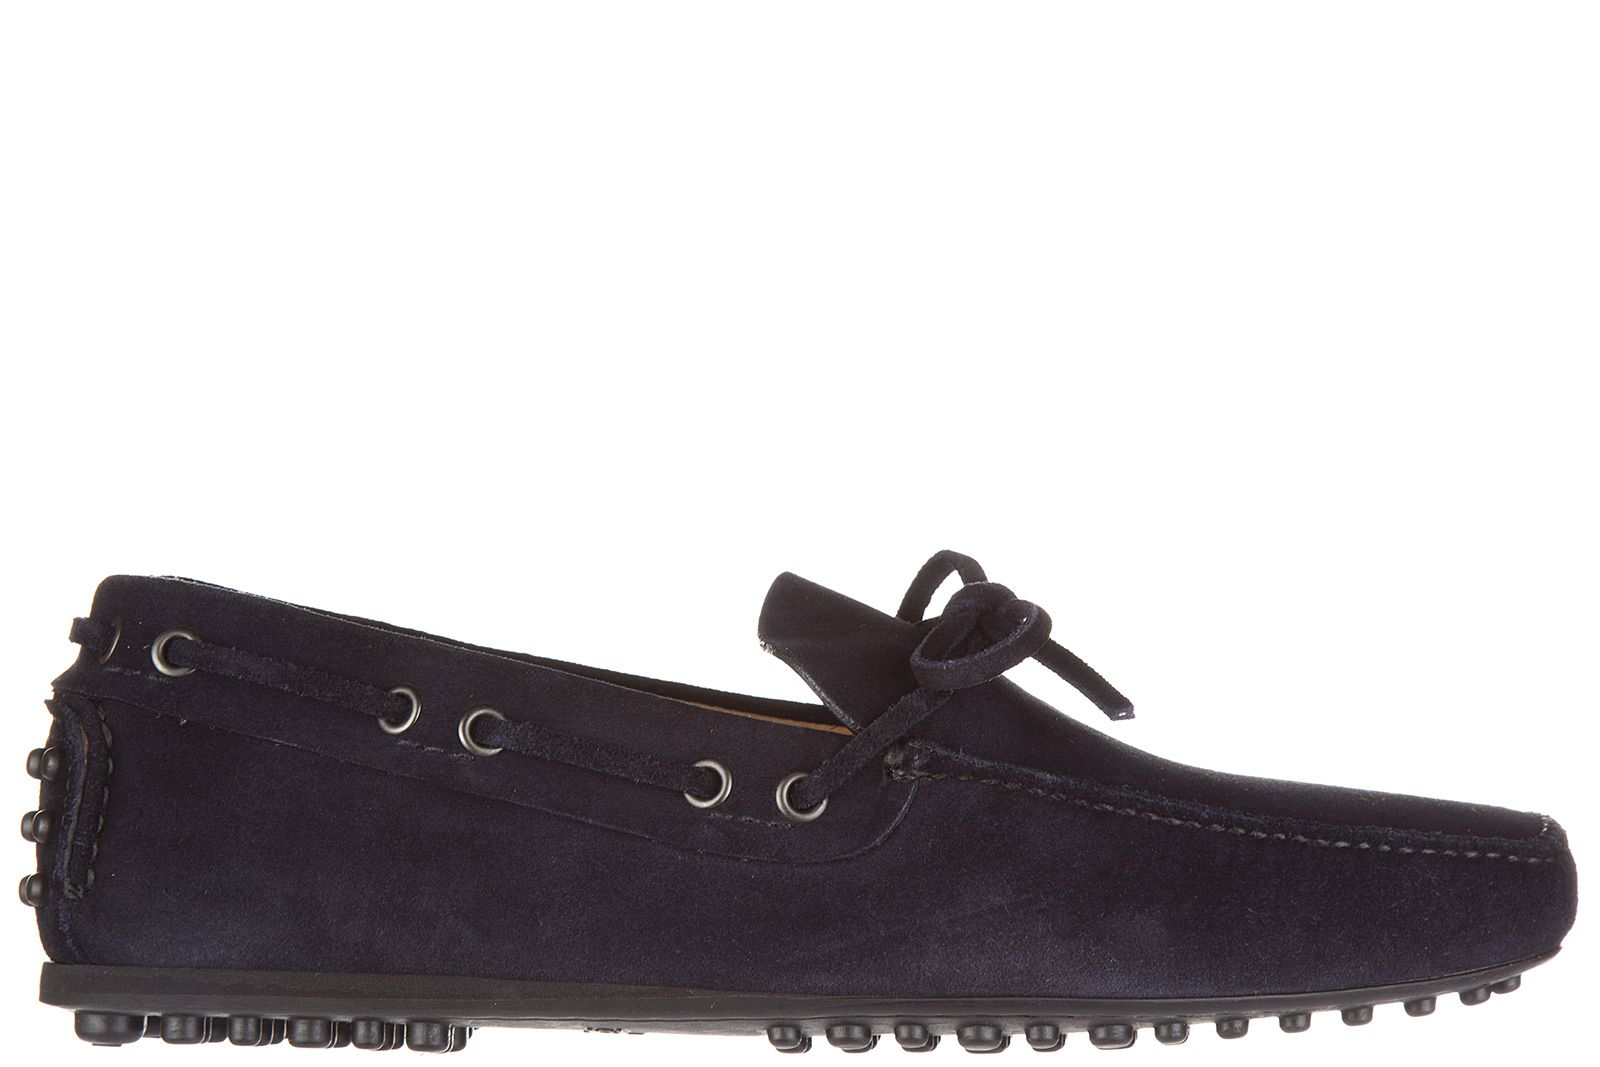 Mens suede loafers, Shoes mens, Loafers men